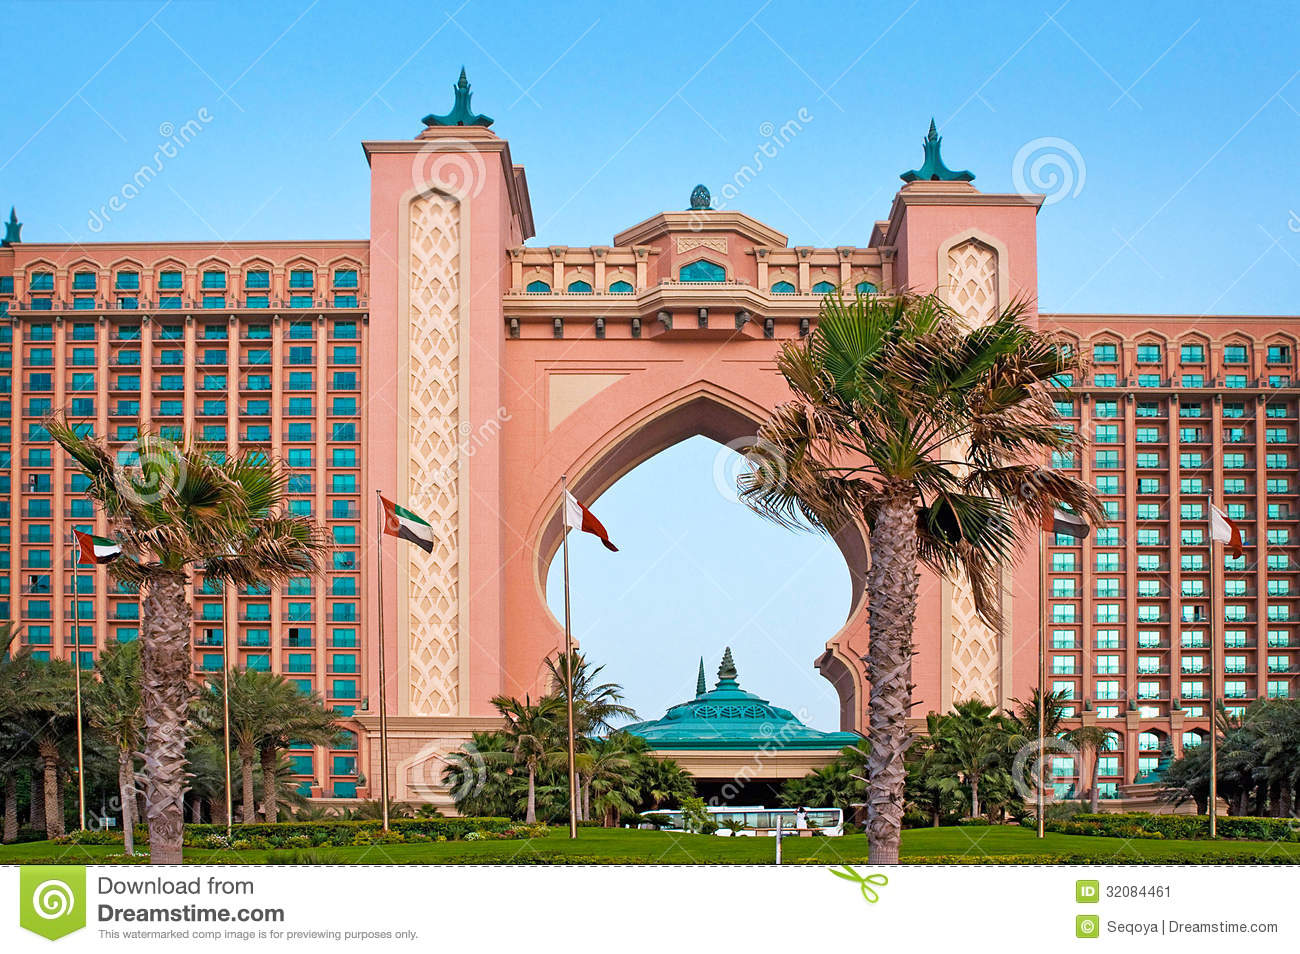 The famous atlantis hotel on the palm island on june 3 for Dubai famous hotel